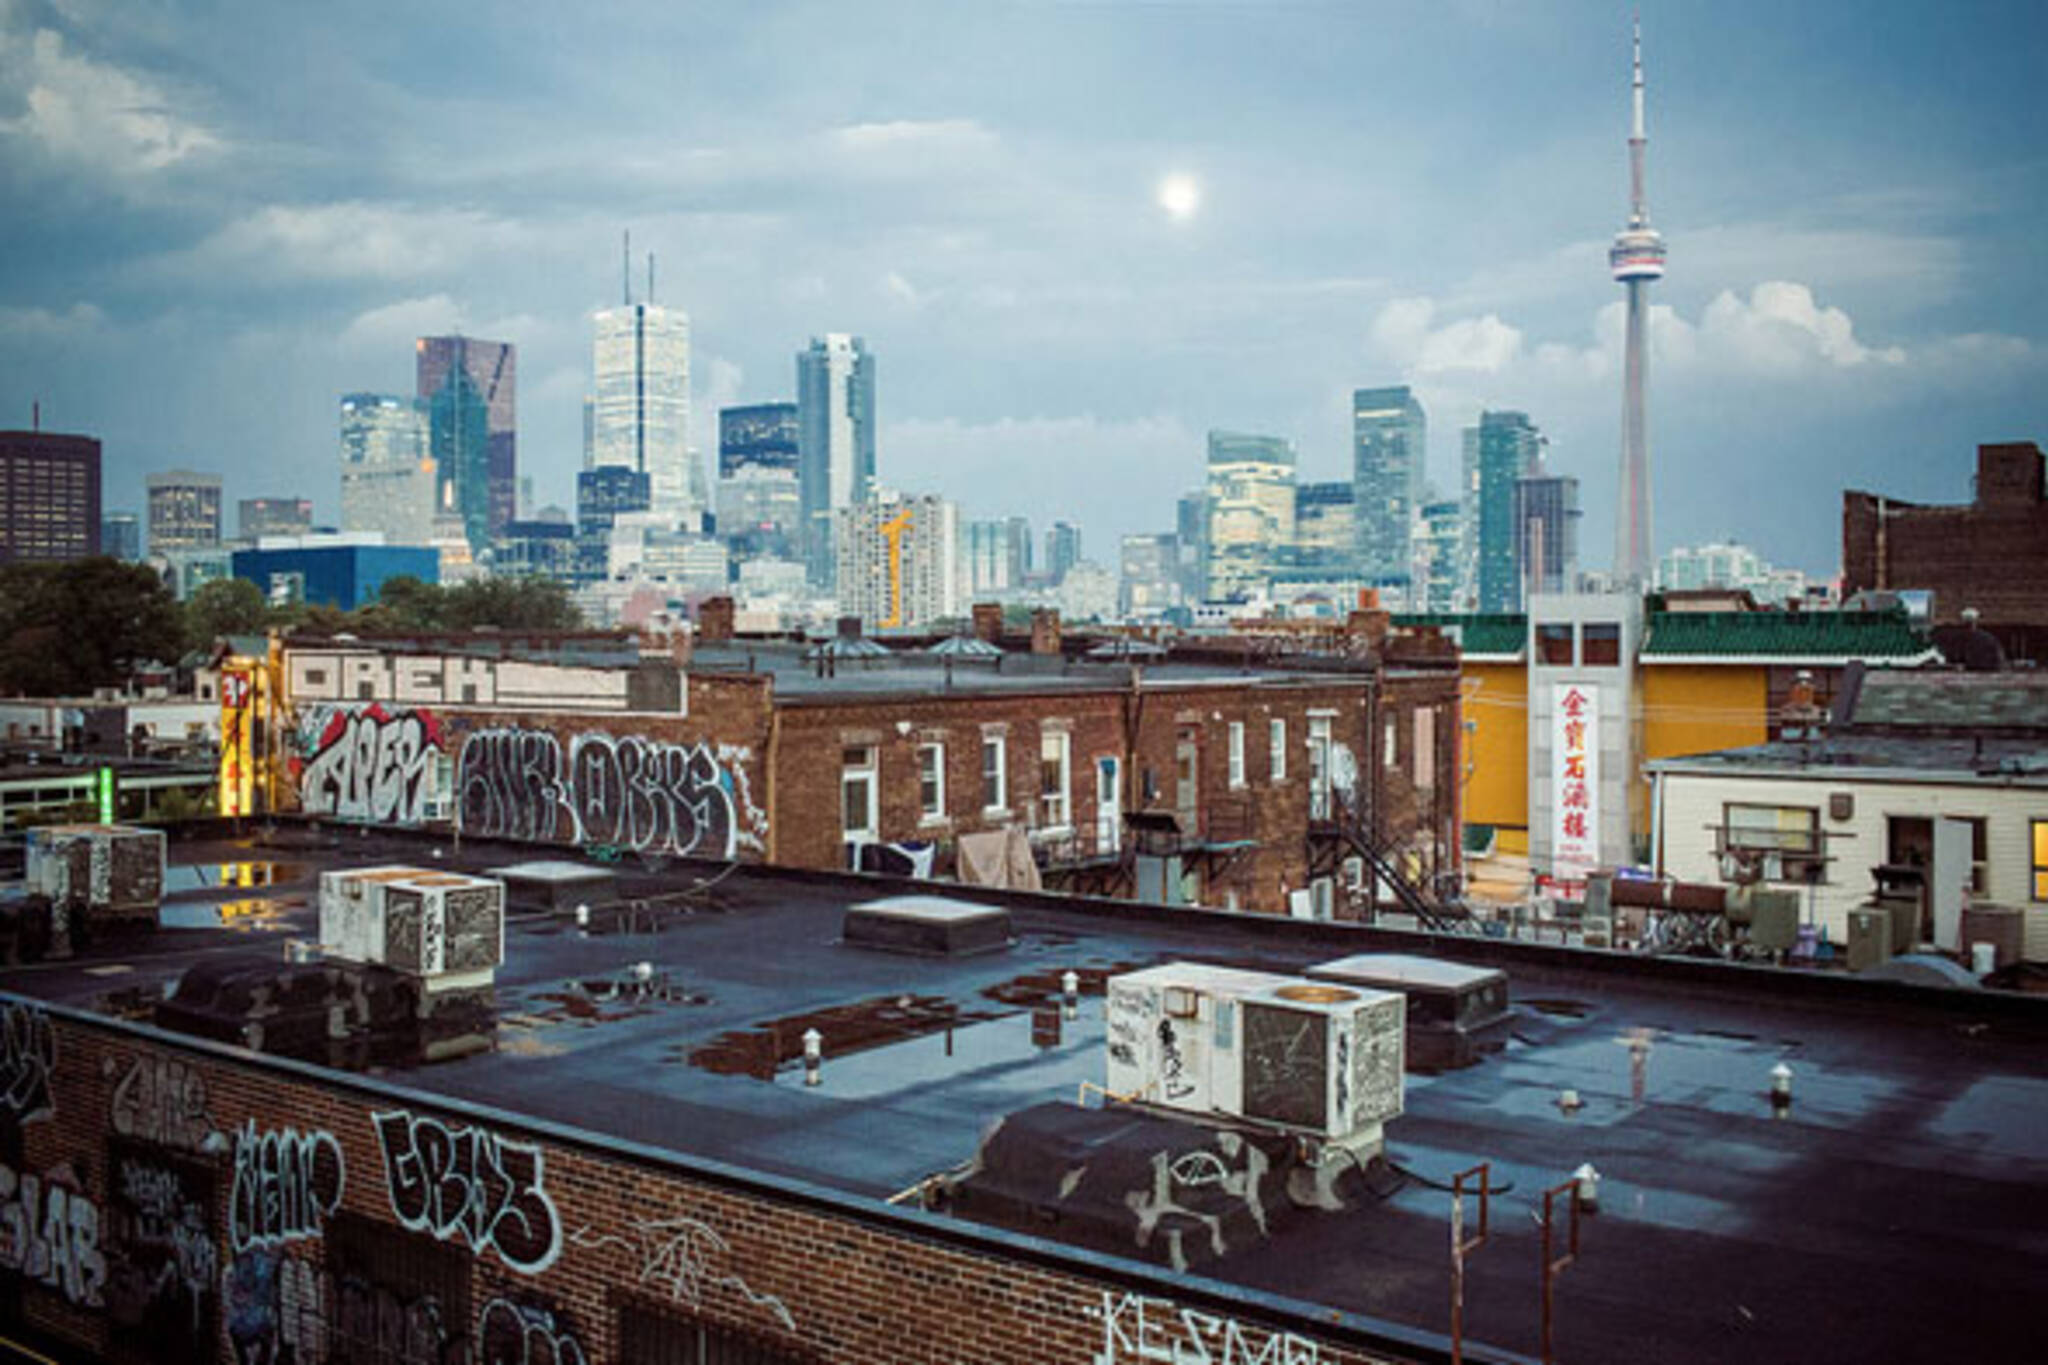 toronto chinatown skyline graffiti cn tower